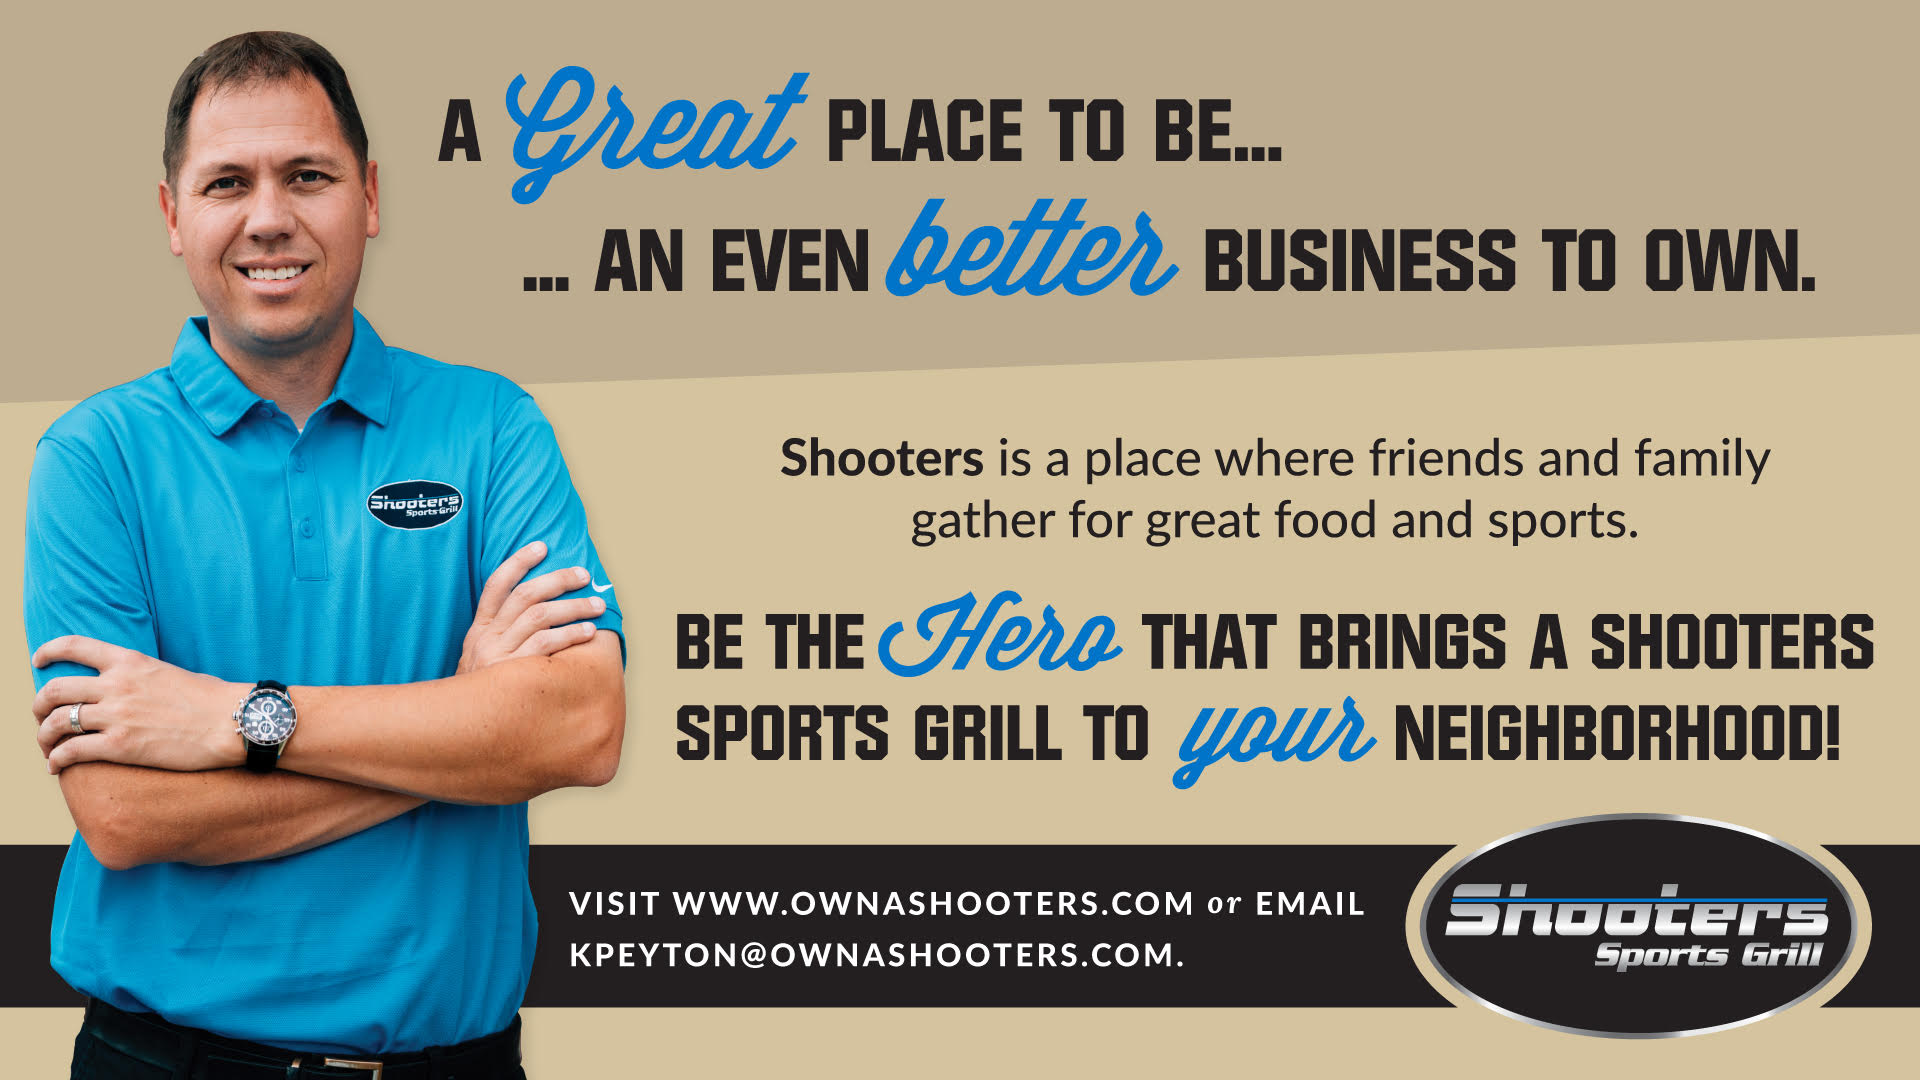 Own a Shooters Sports Grill